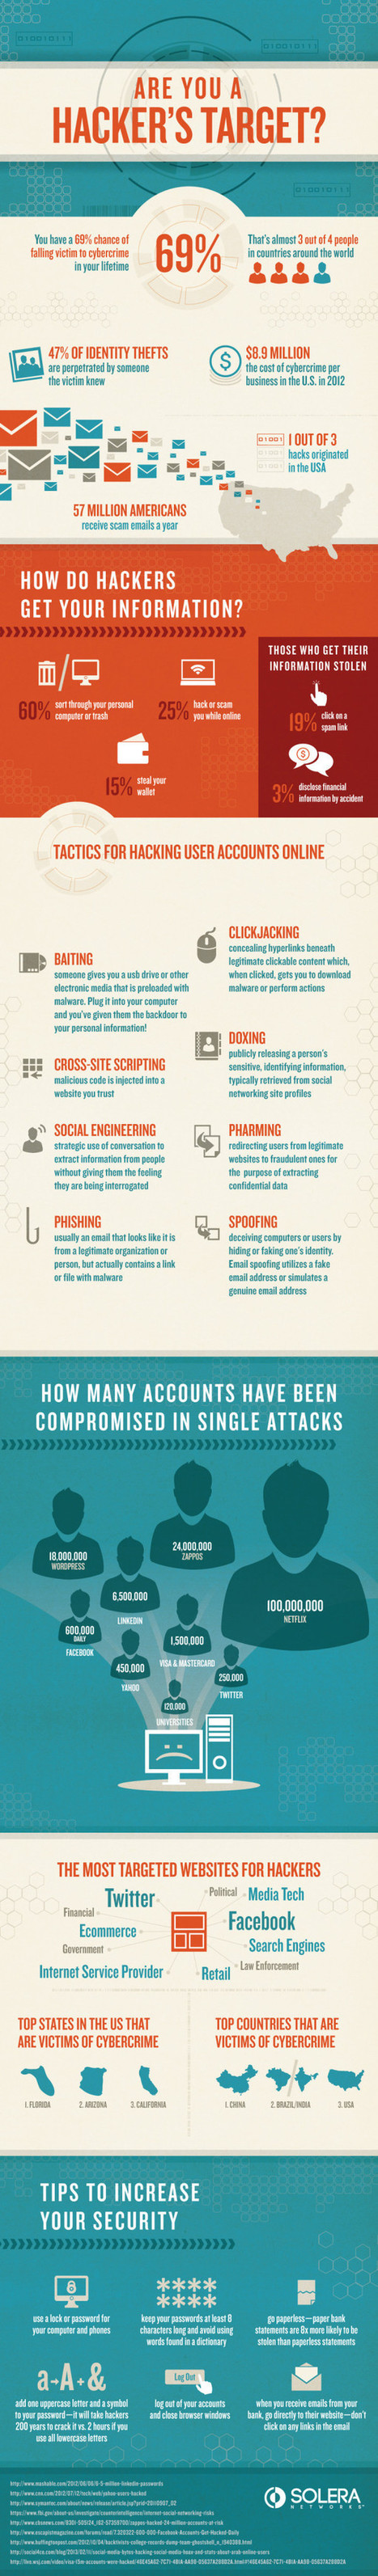 Are you a hacker's target? [infographic] | Sizzlin' News | Scoop.it